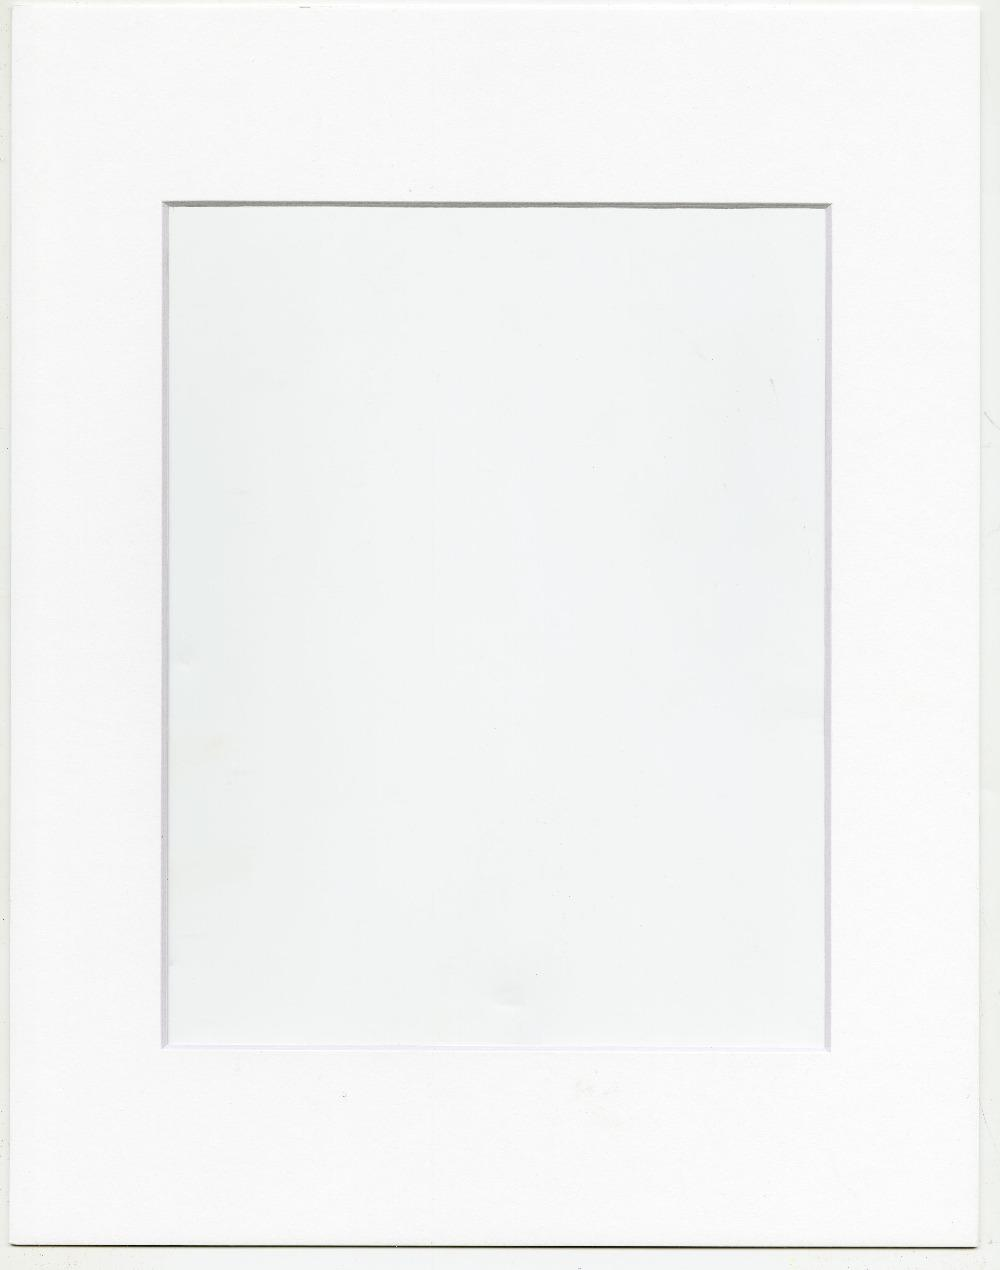 Pack 11x14 Solid Color Pre-cut Opening Matboard for Picture Frame ...